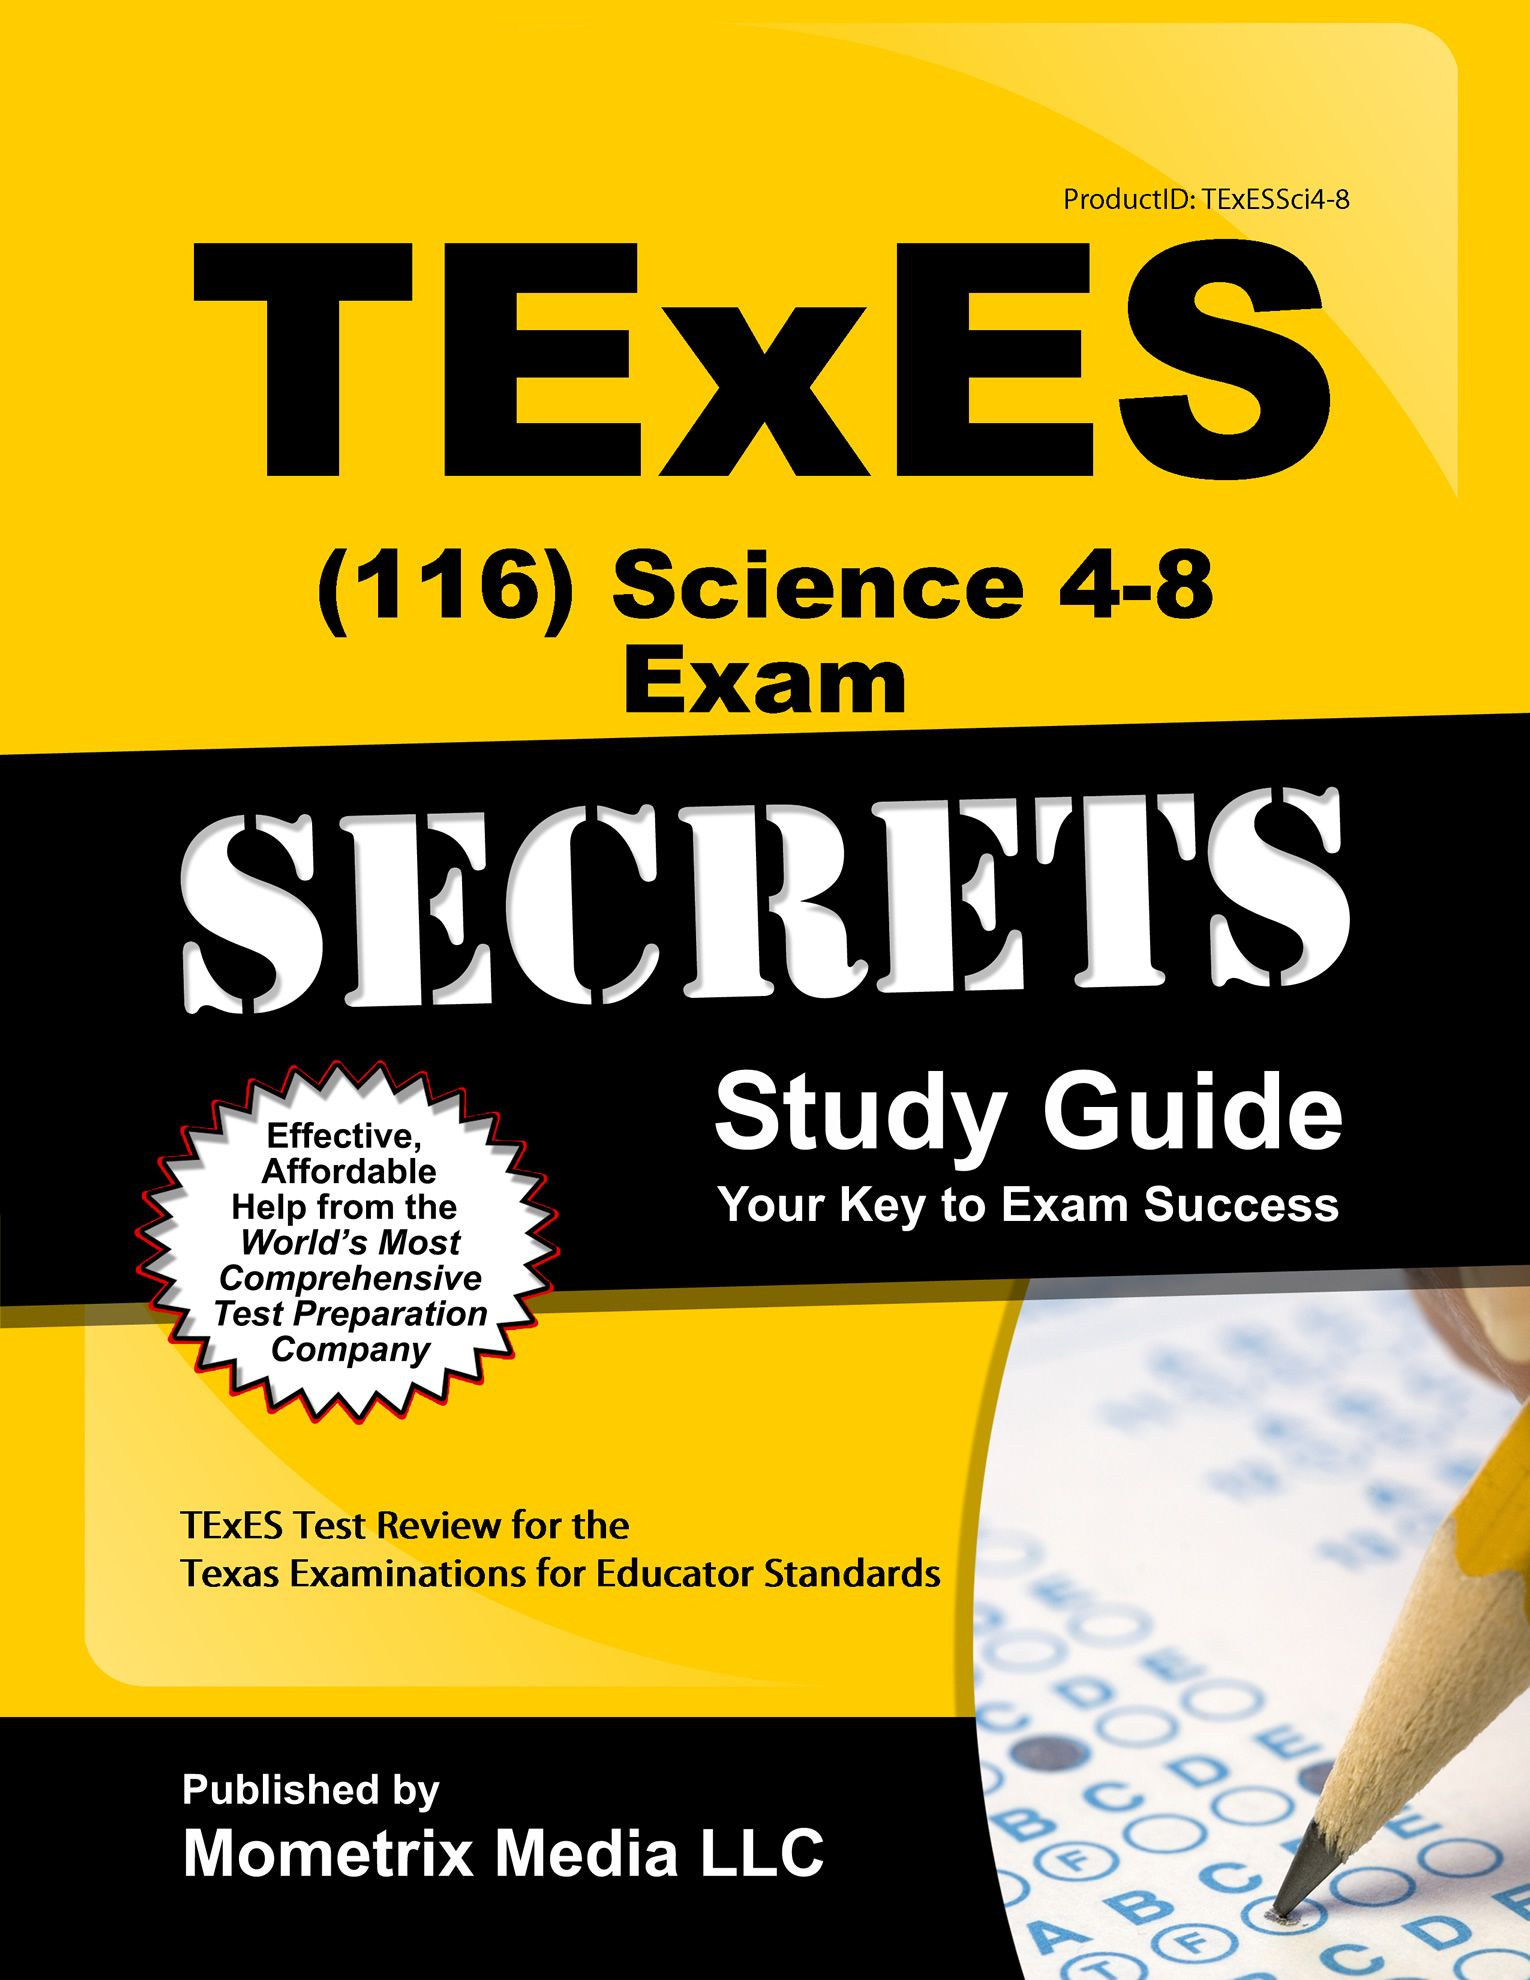 Passing the texes certification exam - Texes 116 Science 4 8 Exam Study Guide Http Mo